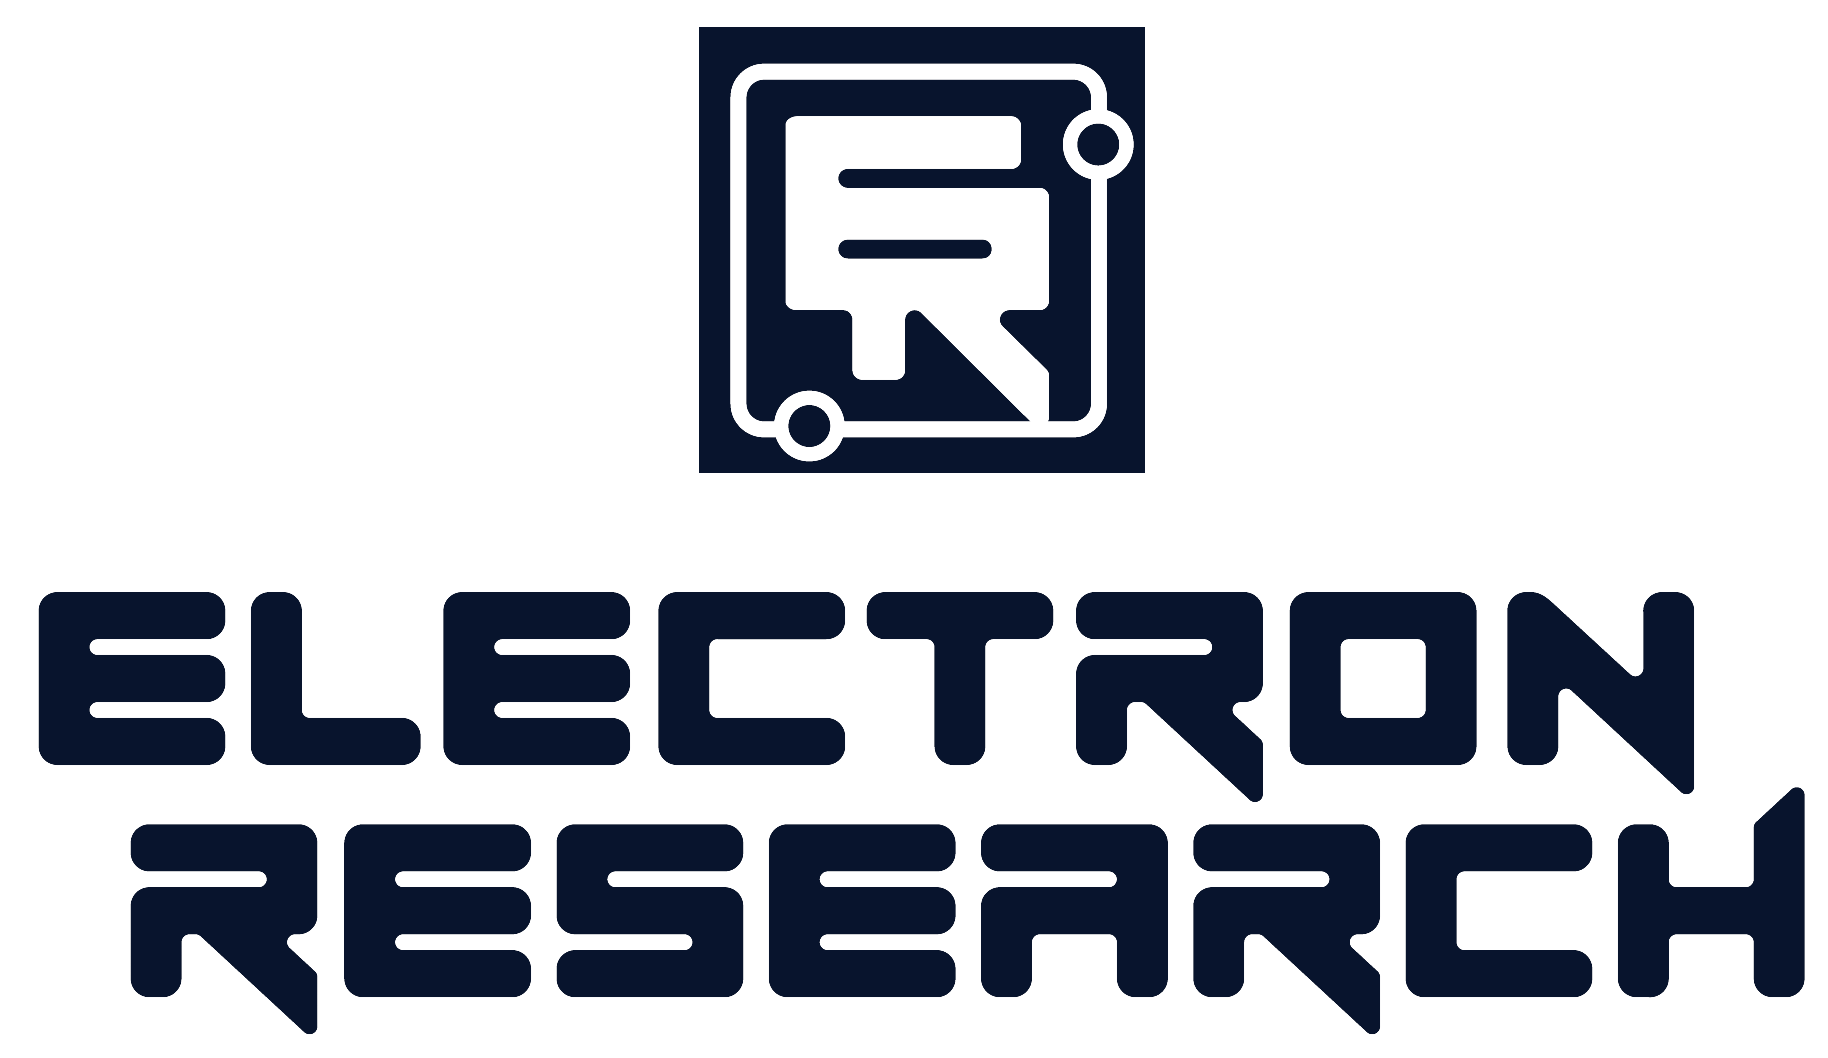 Electron research